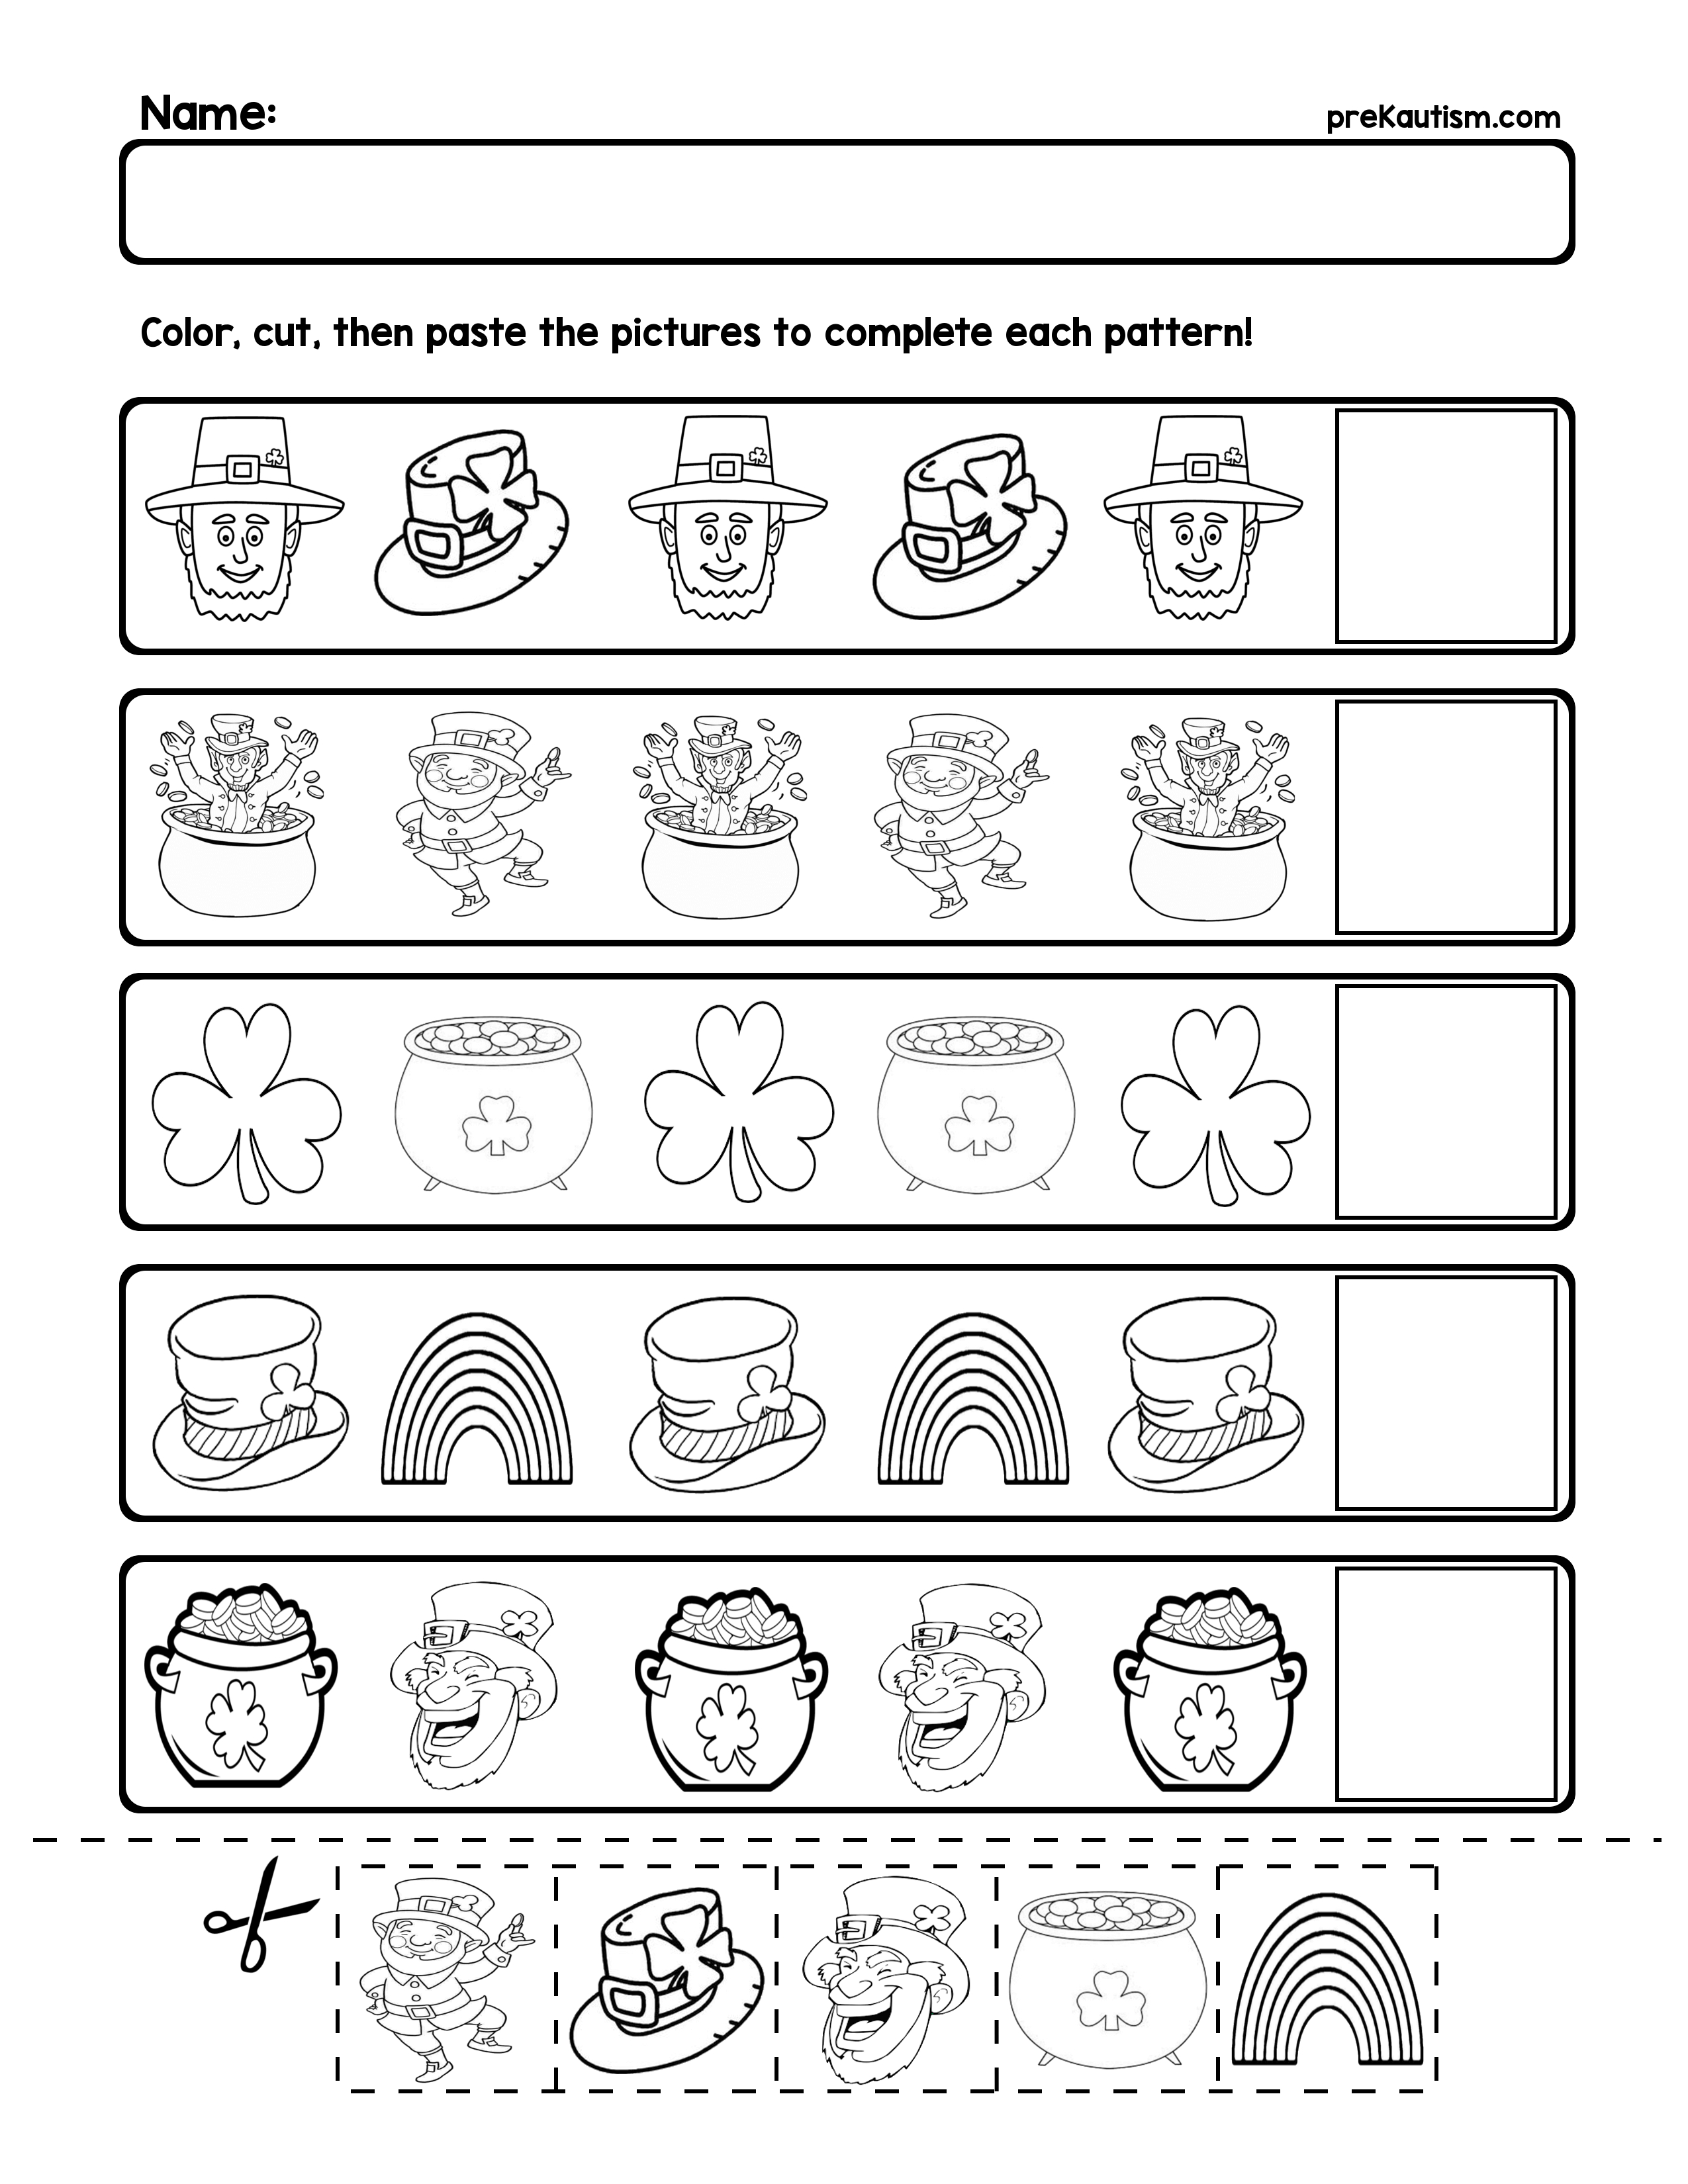 Free St. Patrick's Day Pattern Worksheets | My Tpt Store | Pattern | Free Printable Ab Pattern Worksheets